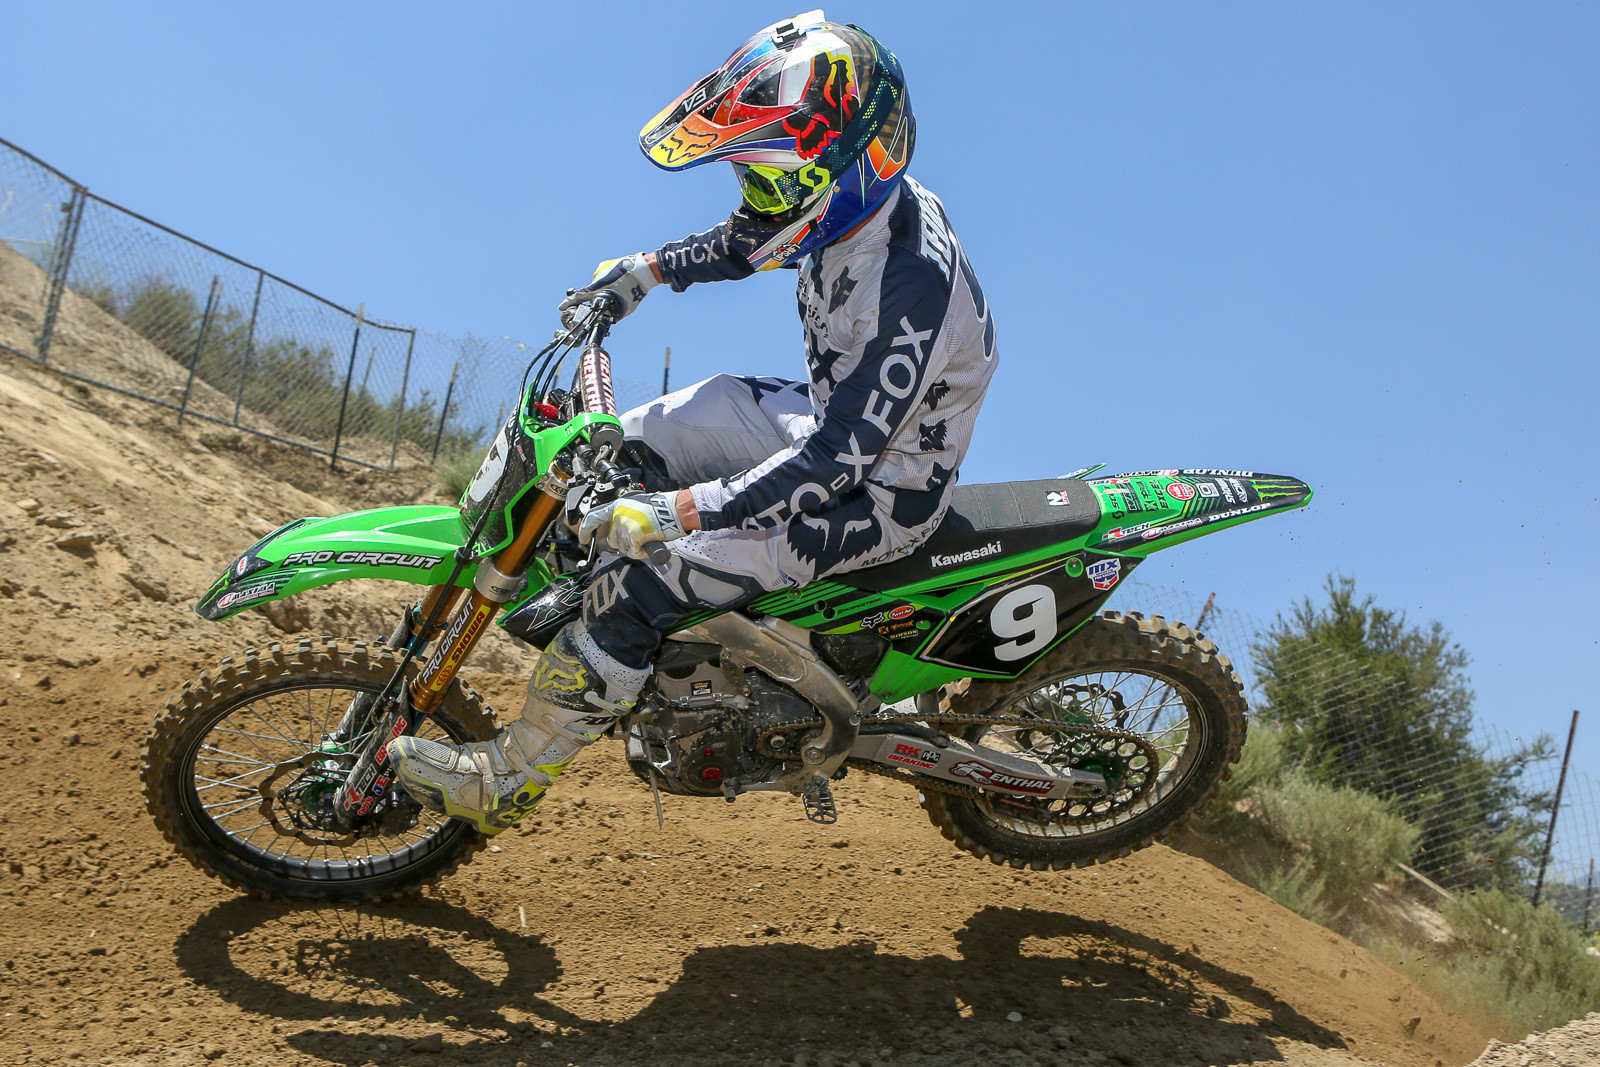 If you see Ivan Tedesco on the track, you know he's testing bikes and helping get the Monster Energy Pro Circuit Kawasaki guys dialed in.